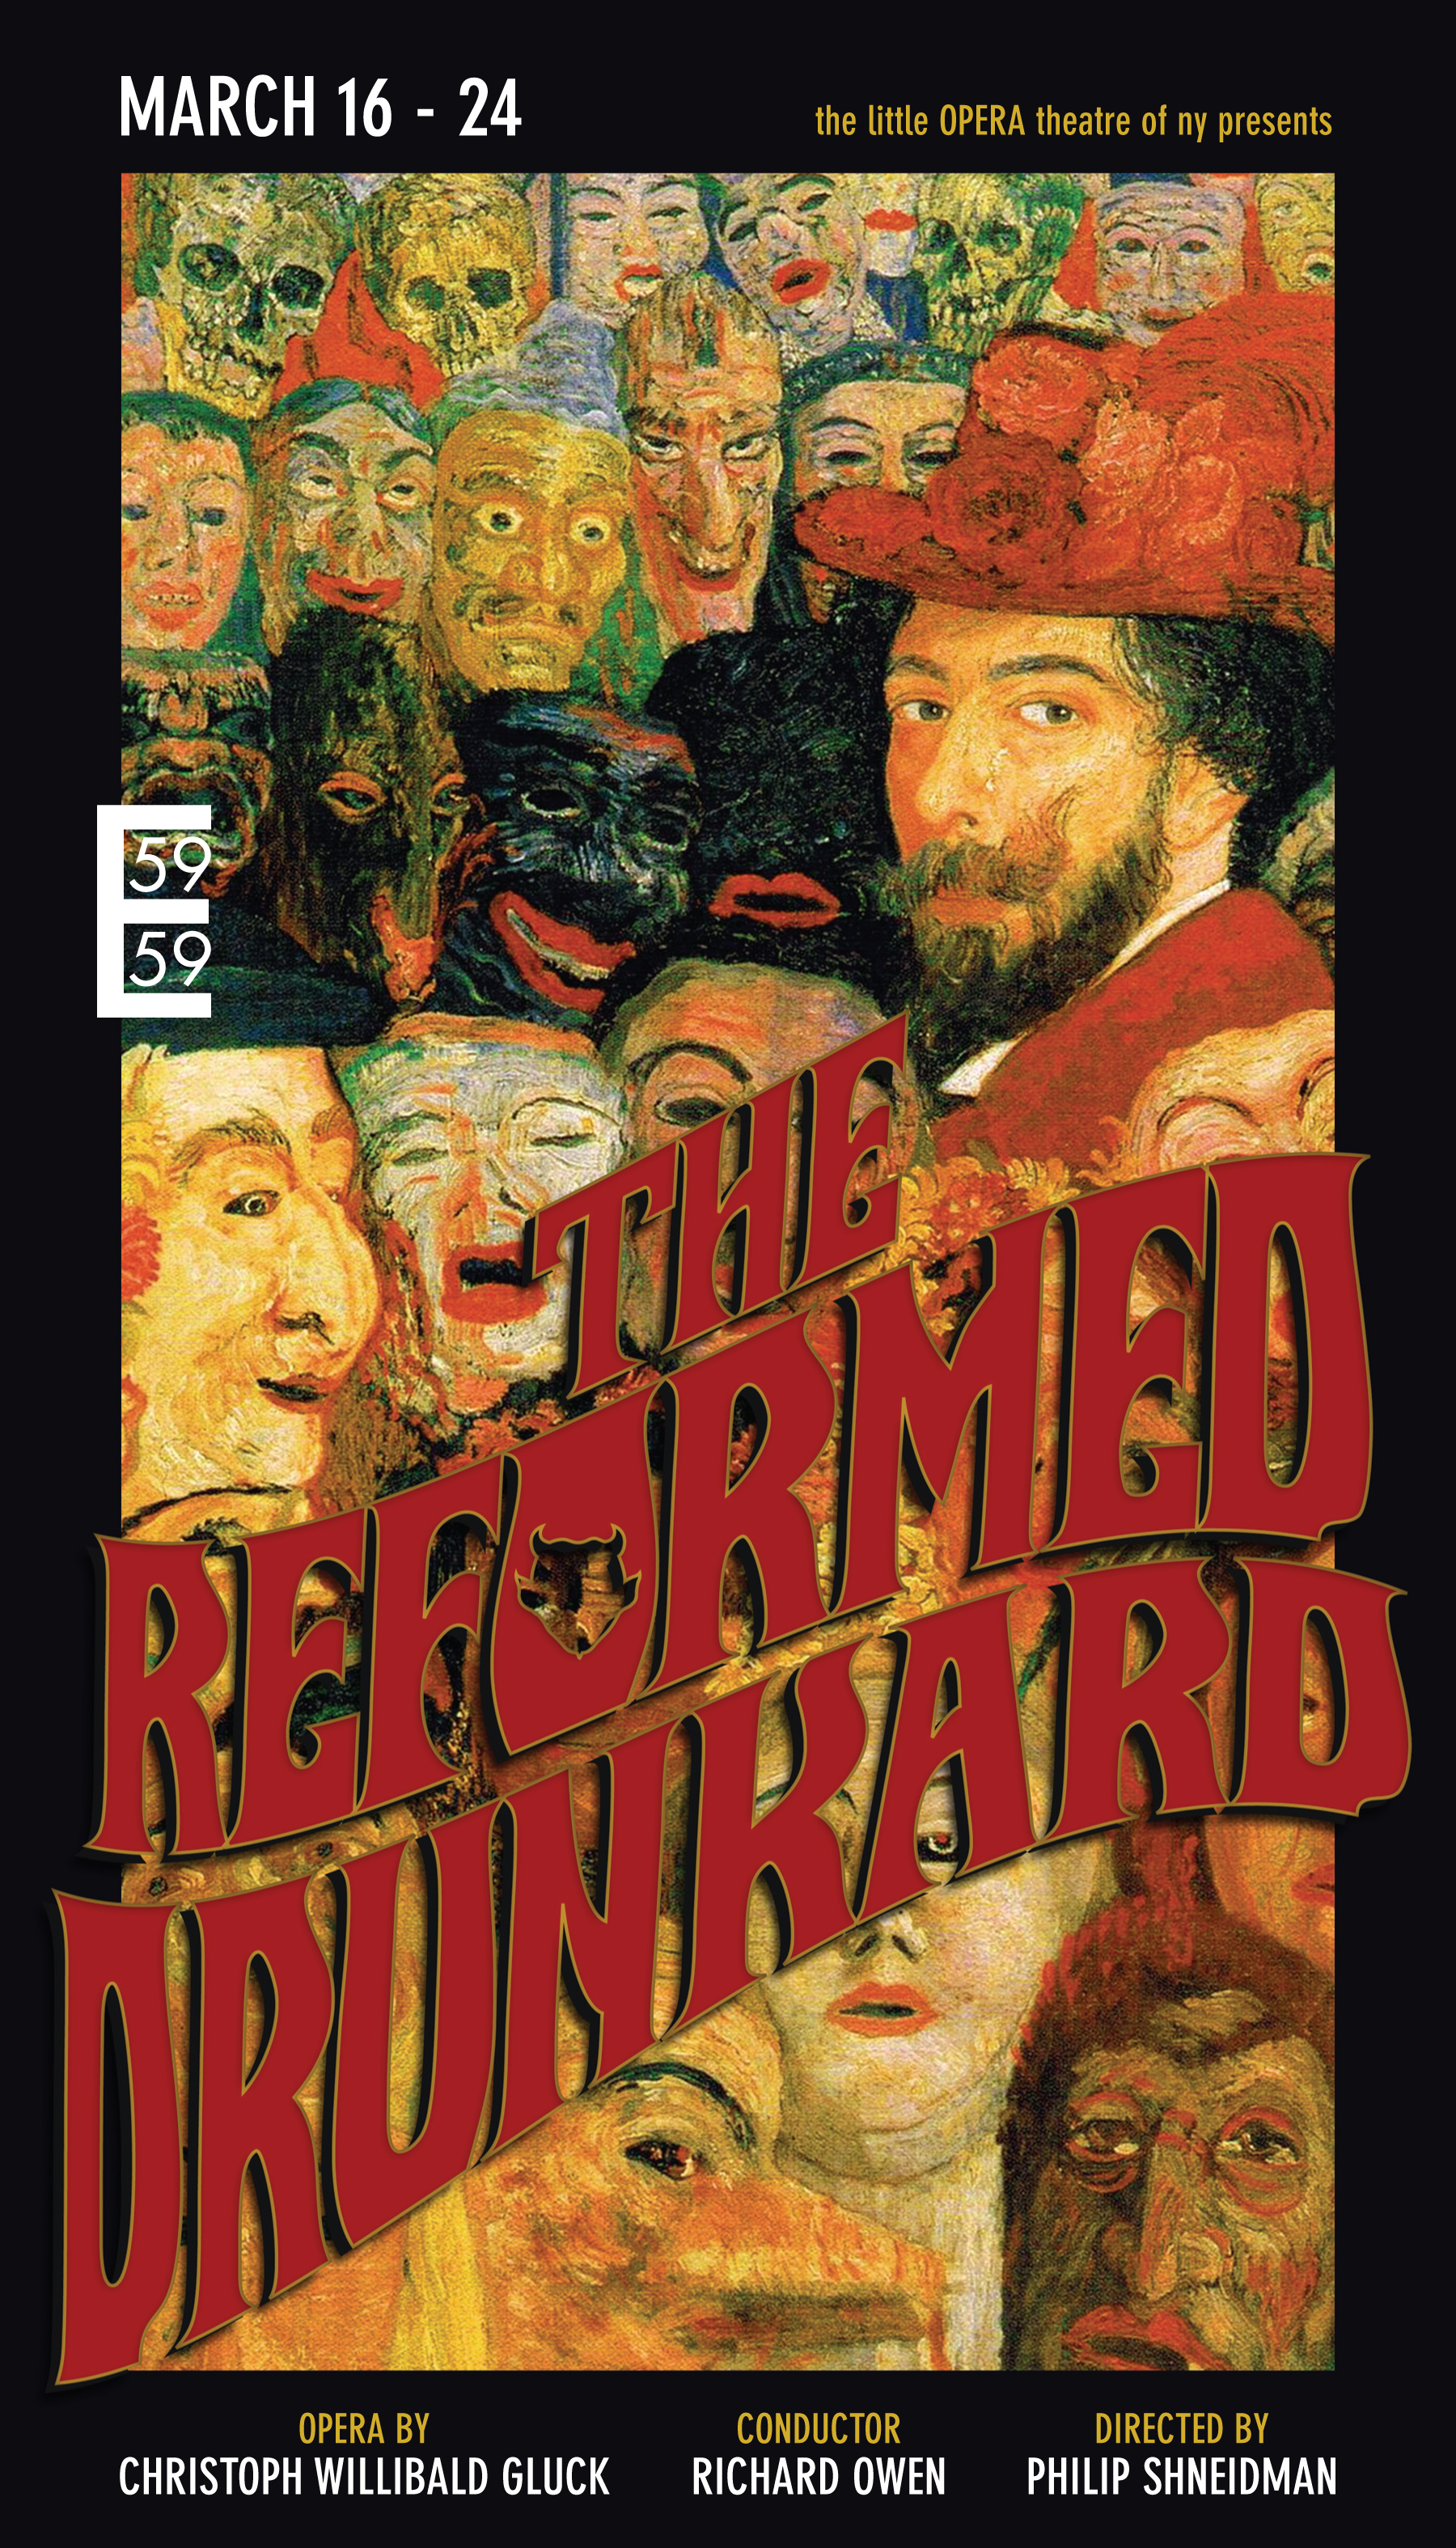 The Reformed Drunkard - by Christoph Willibald Gluck59E59 Theaters, March 2013Read the program!